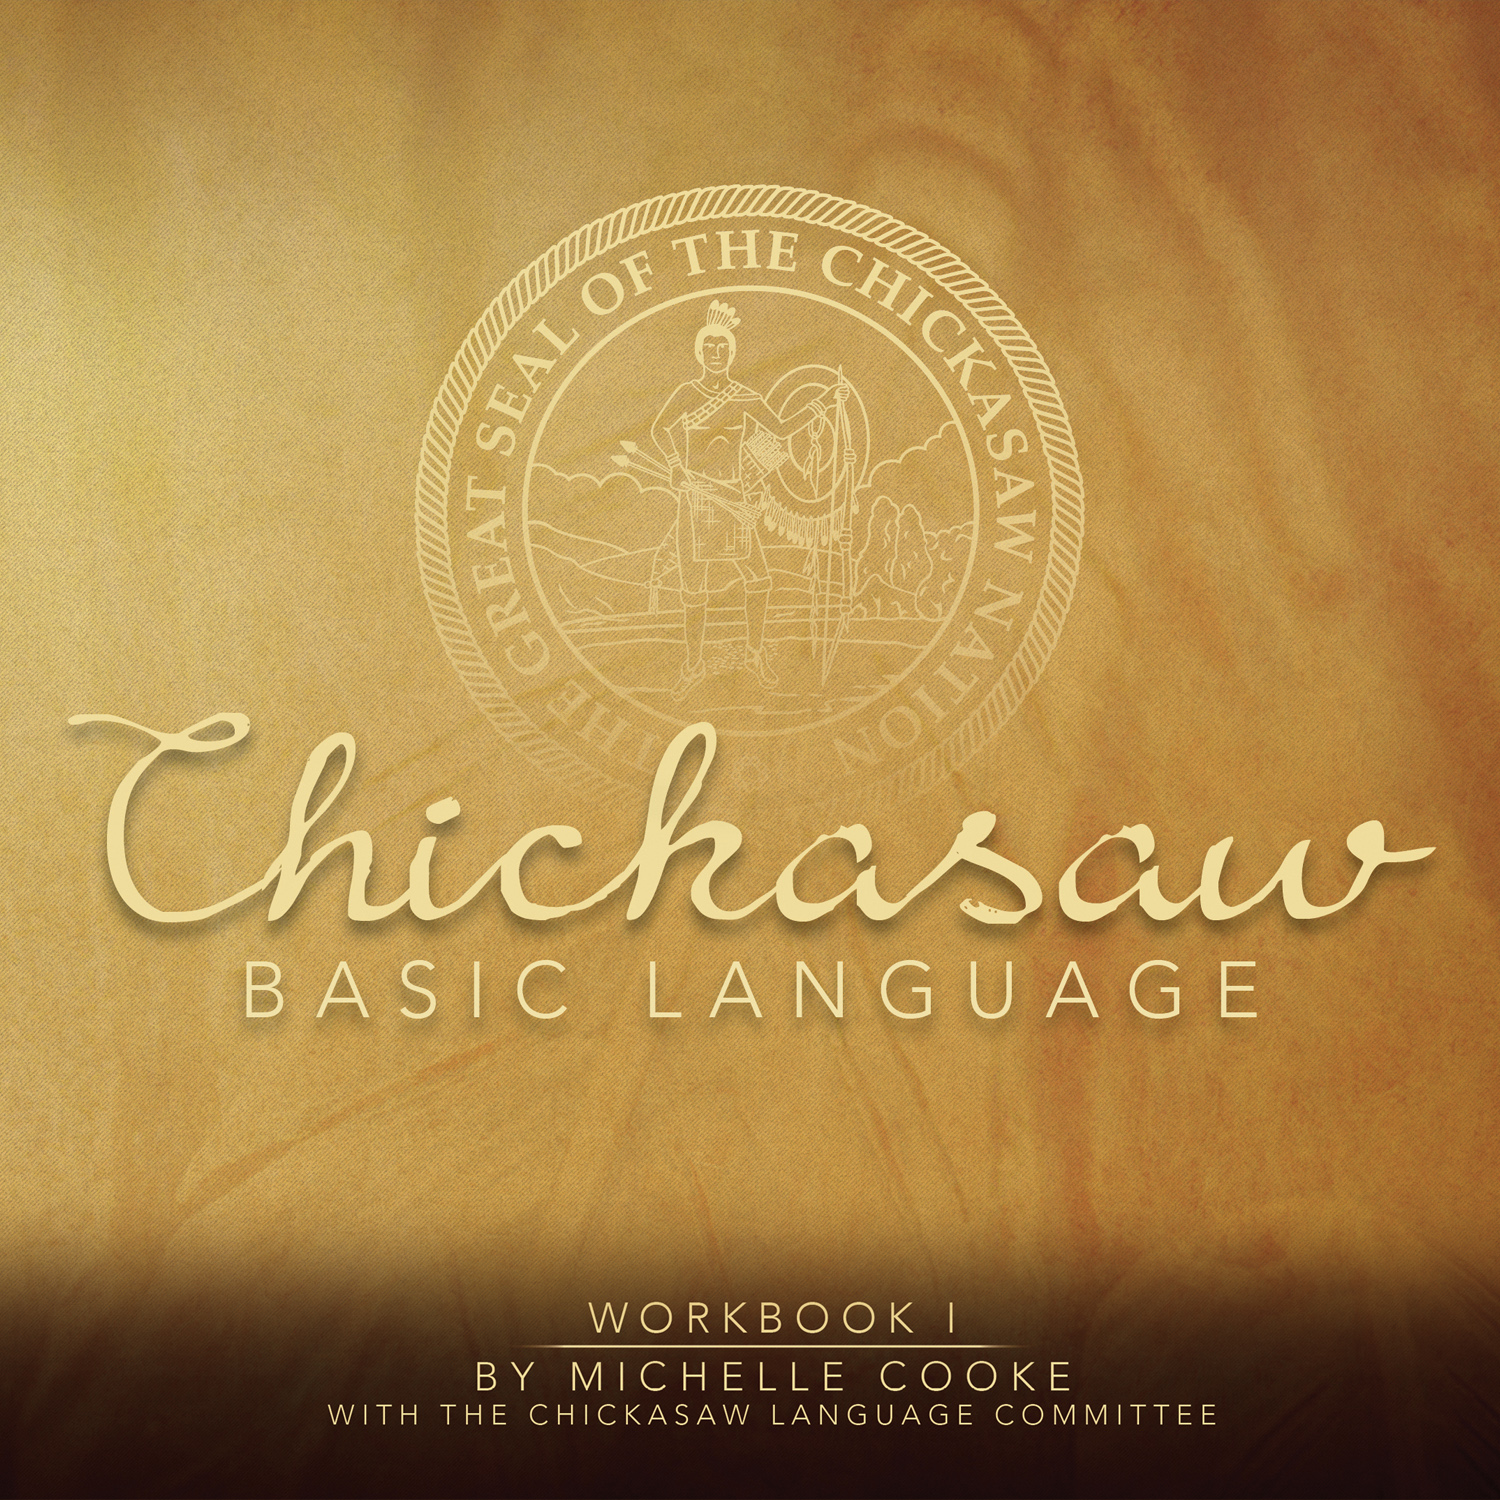 Chickasaw Basic Language Workbook I